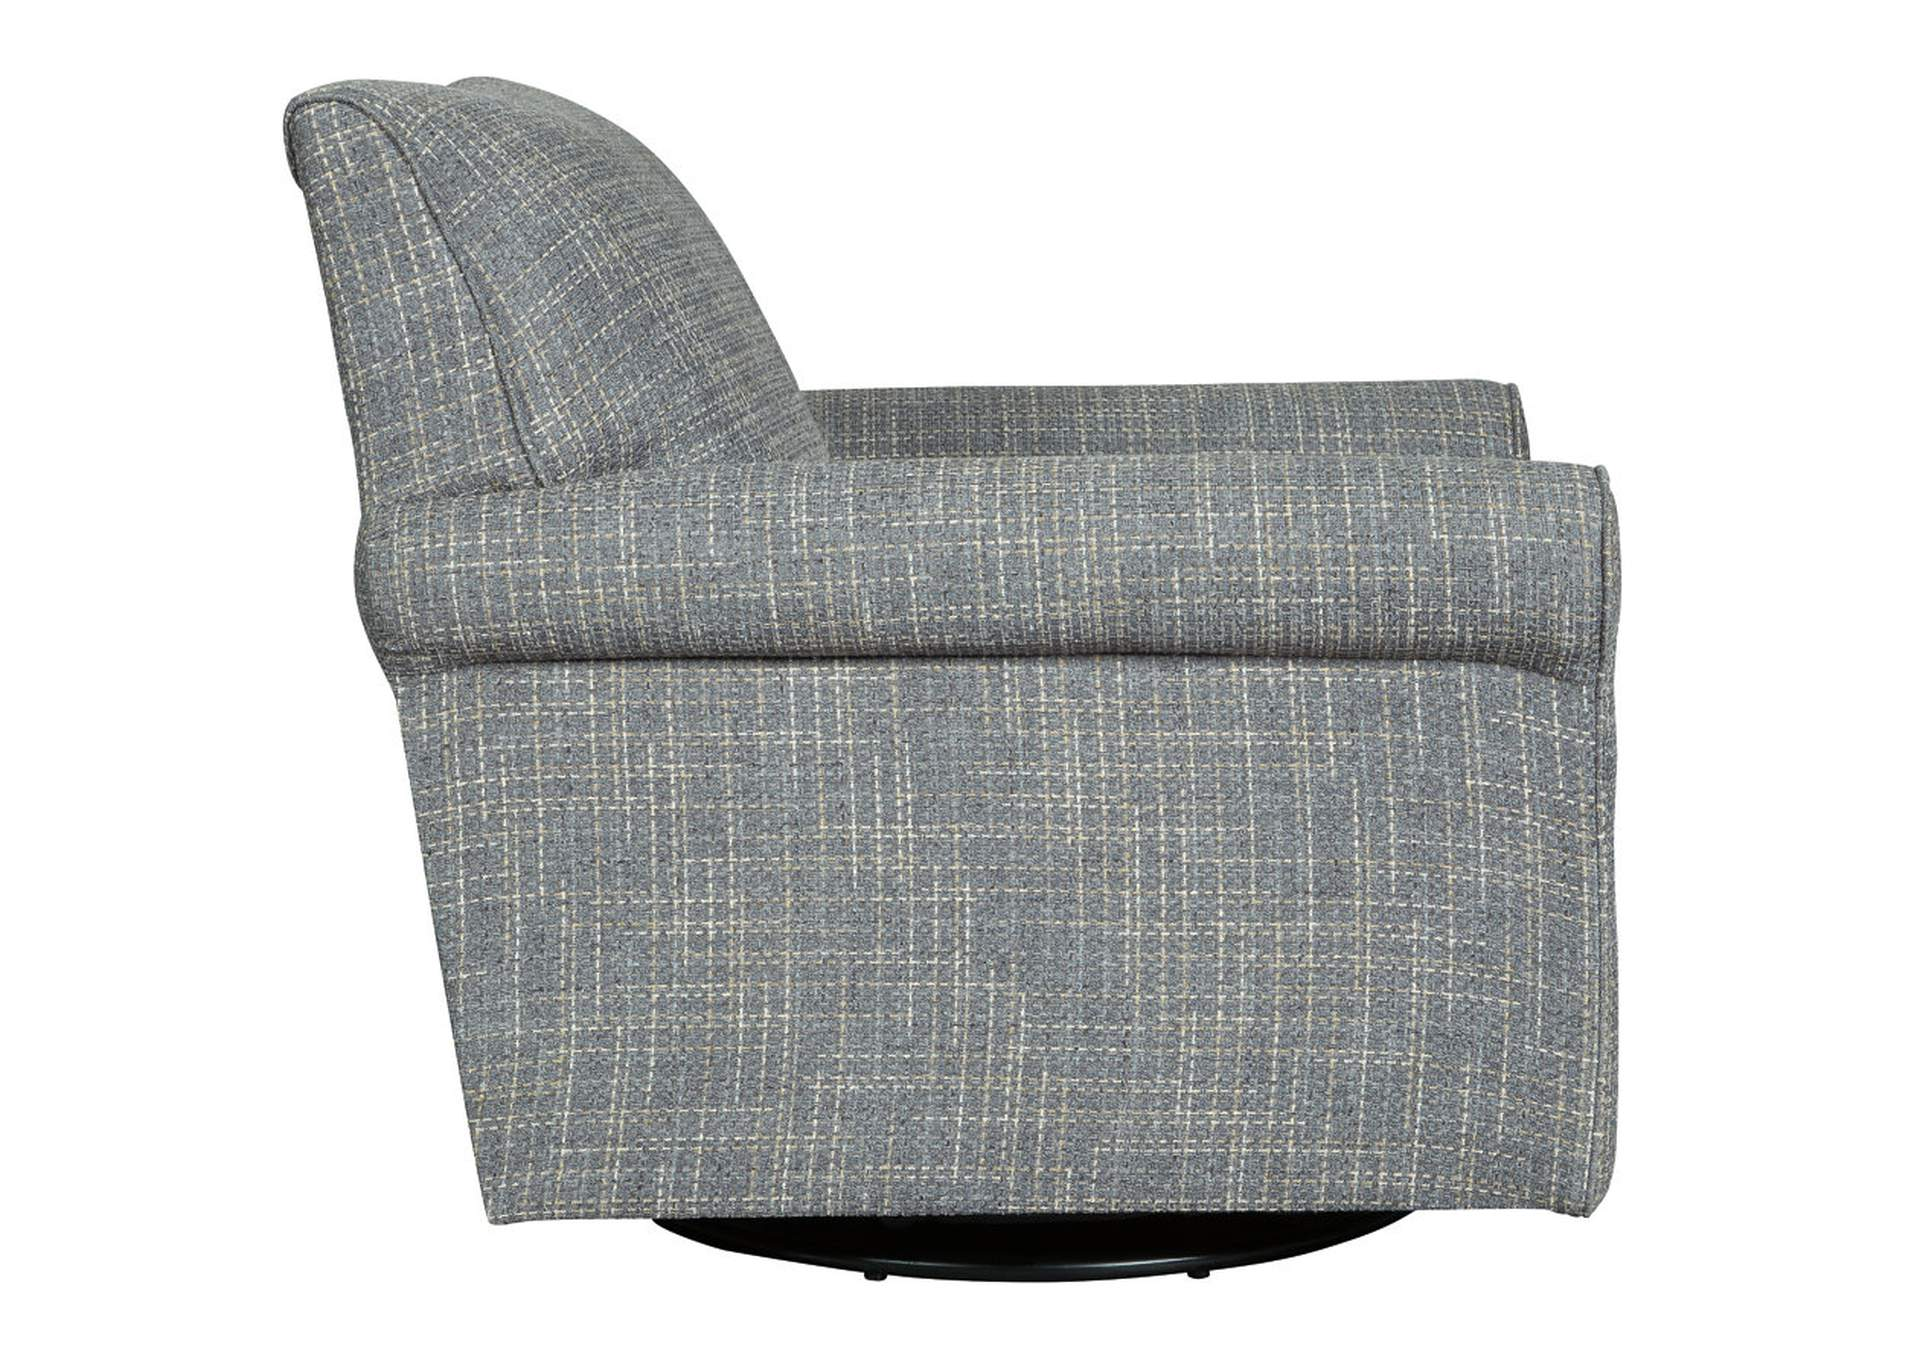 Renley Gray Swivel Glider Chair,Signature Design By Ashley